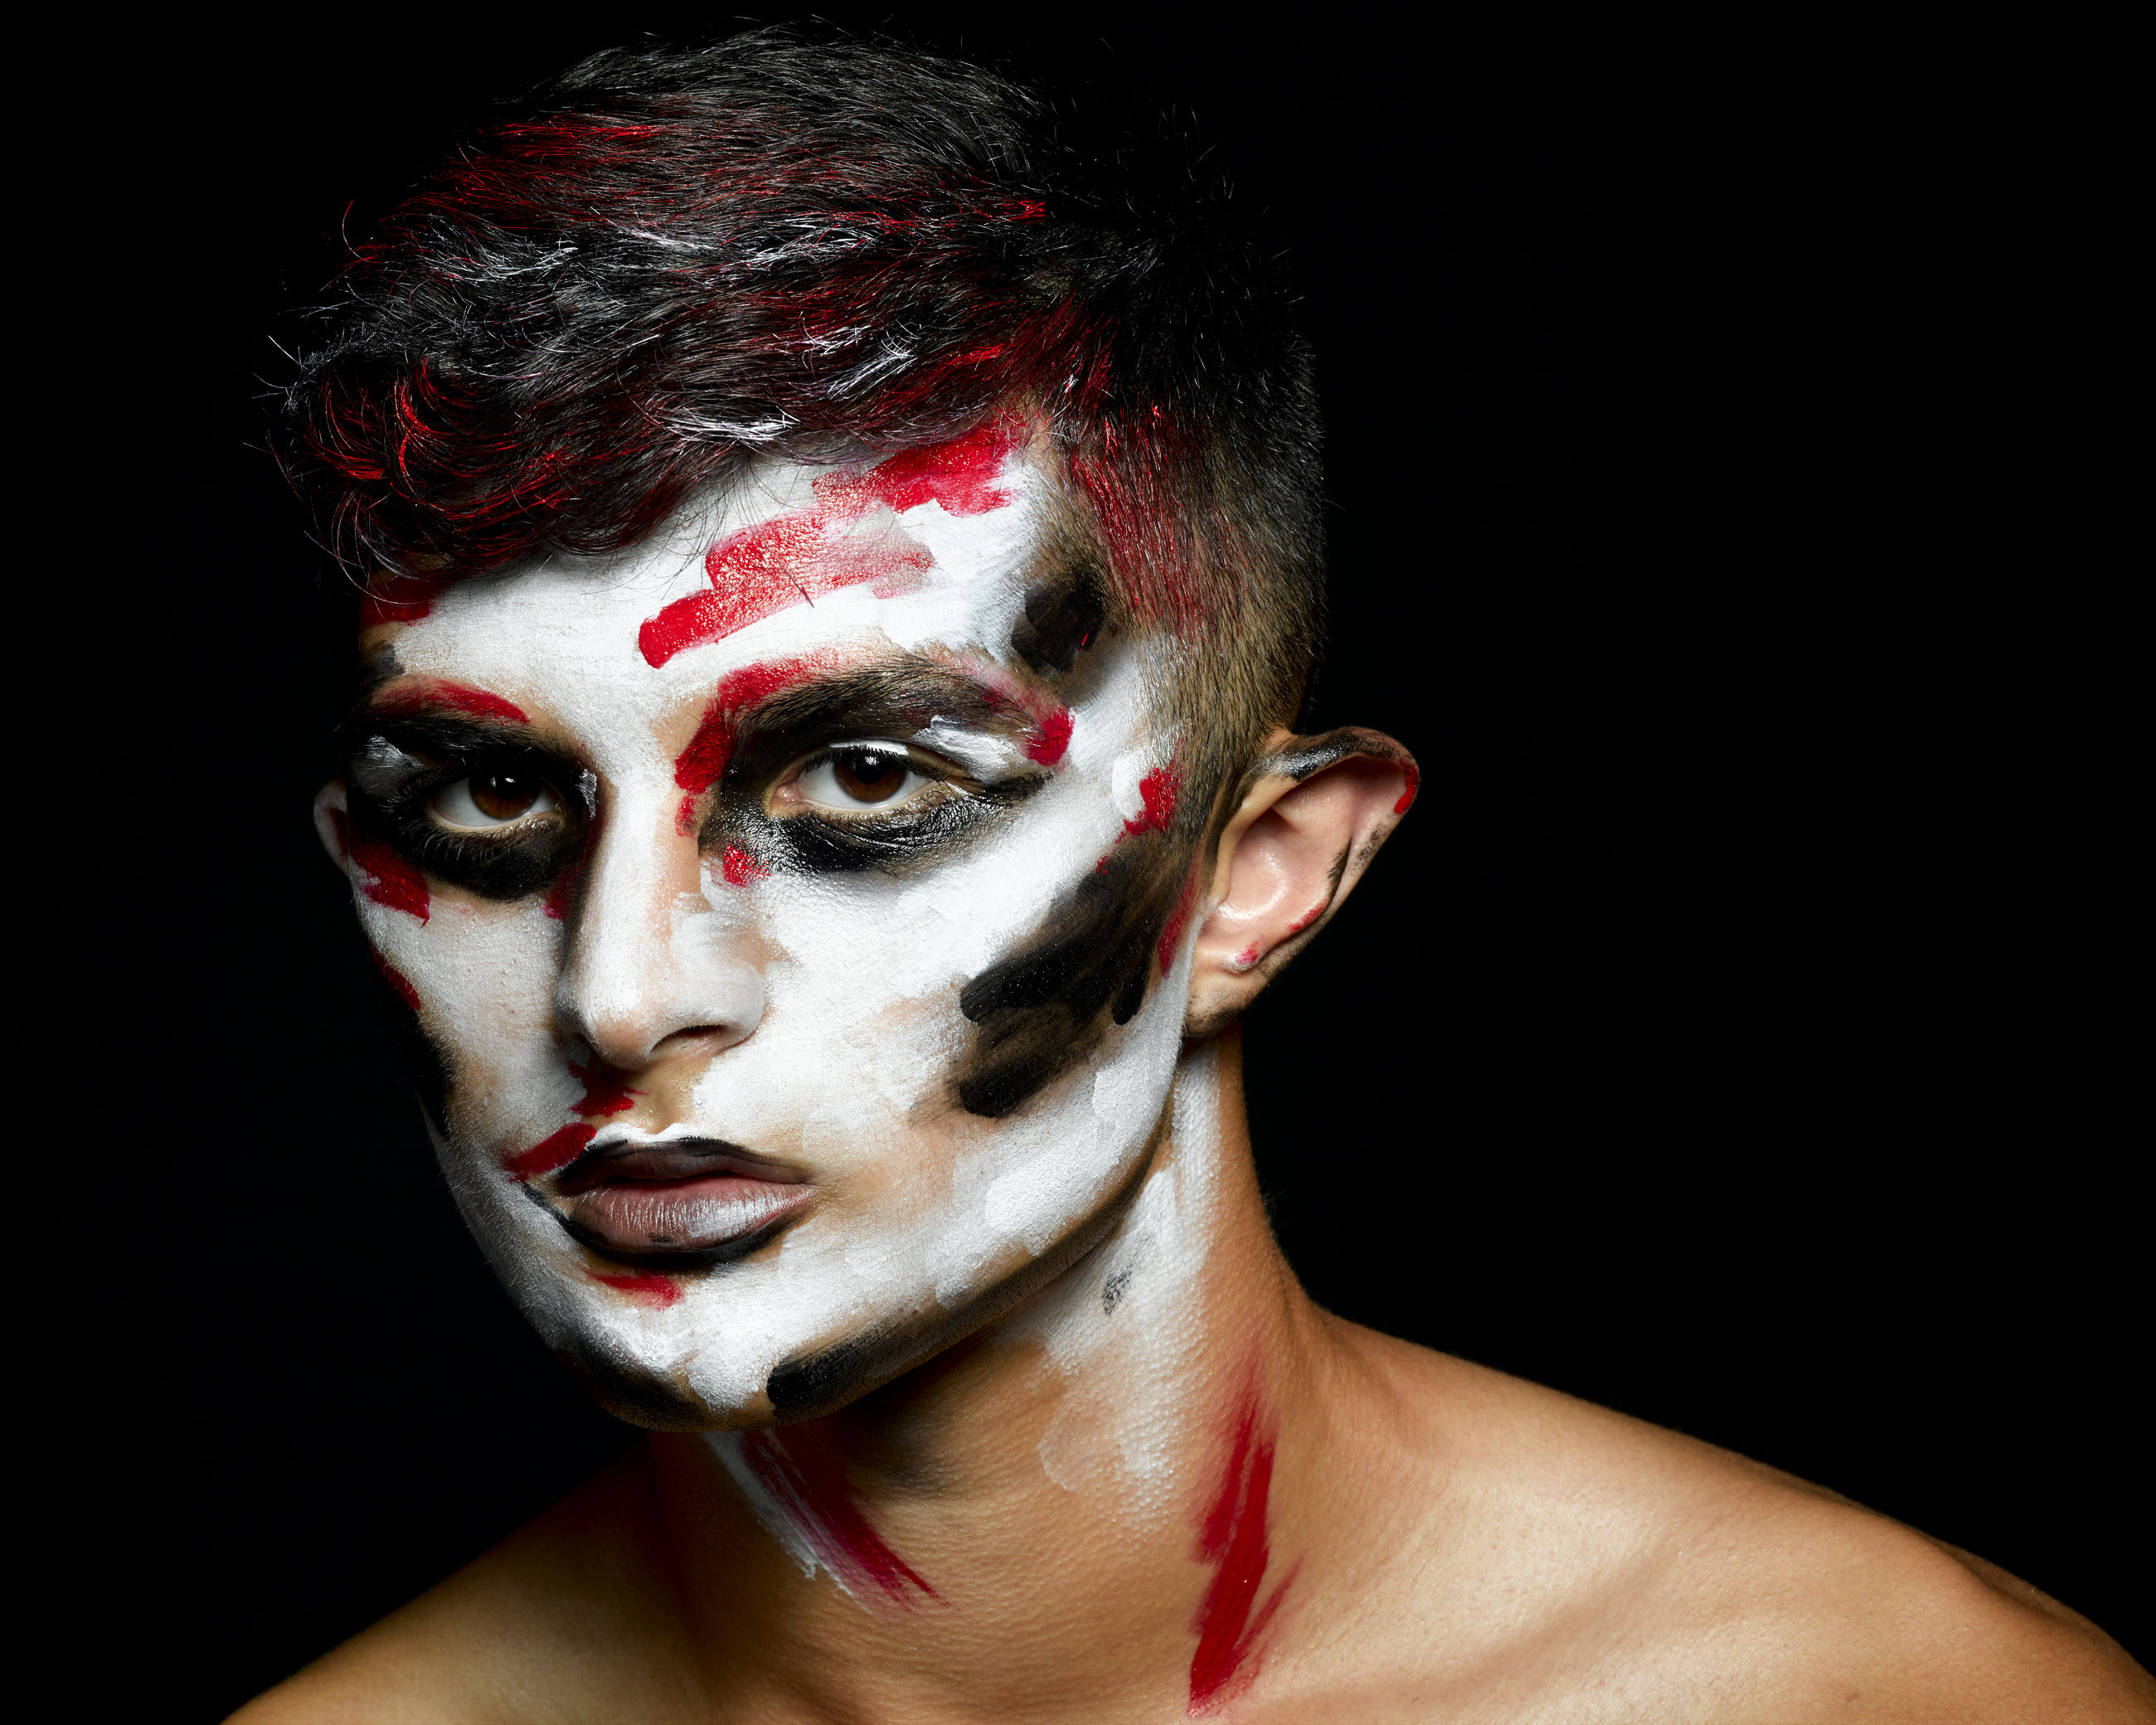 portrait, black background, make-up, studio shot, headshot, looking at camera, one person, halloween, indoors, young adult, paint, face paint, horror, celebration, spooky, fear, stage make-up, copy space, costume, human face, body part, evil, dark, body paint